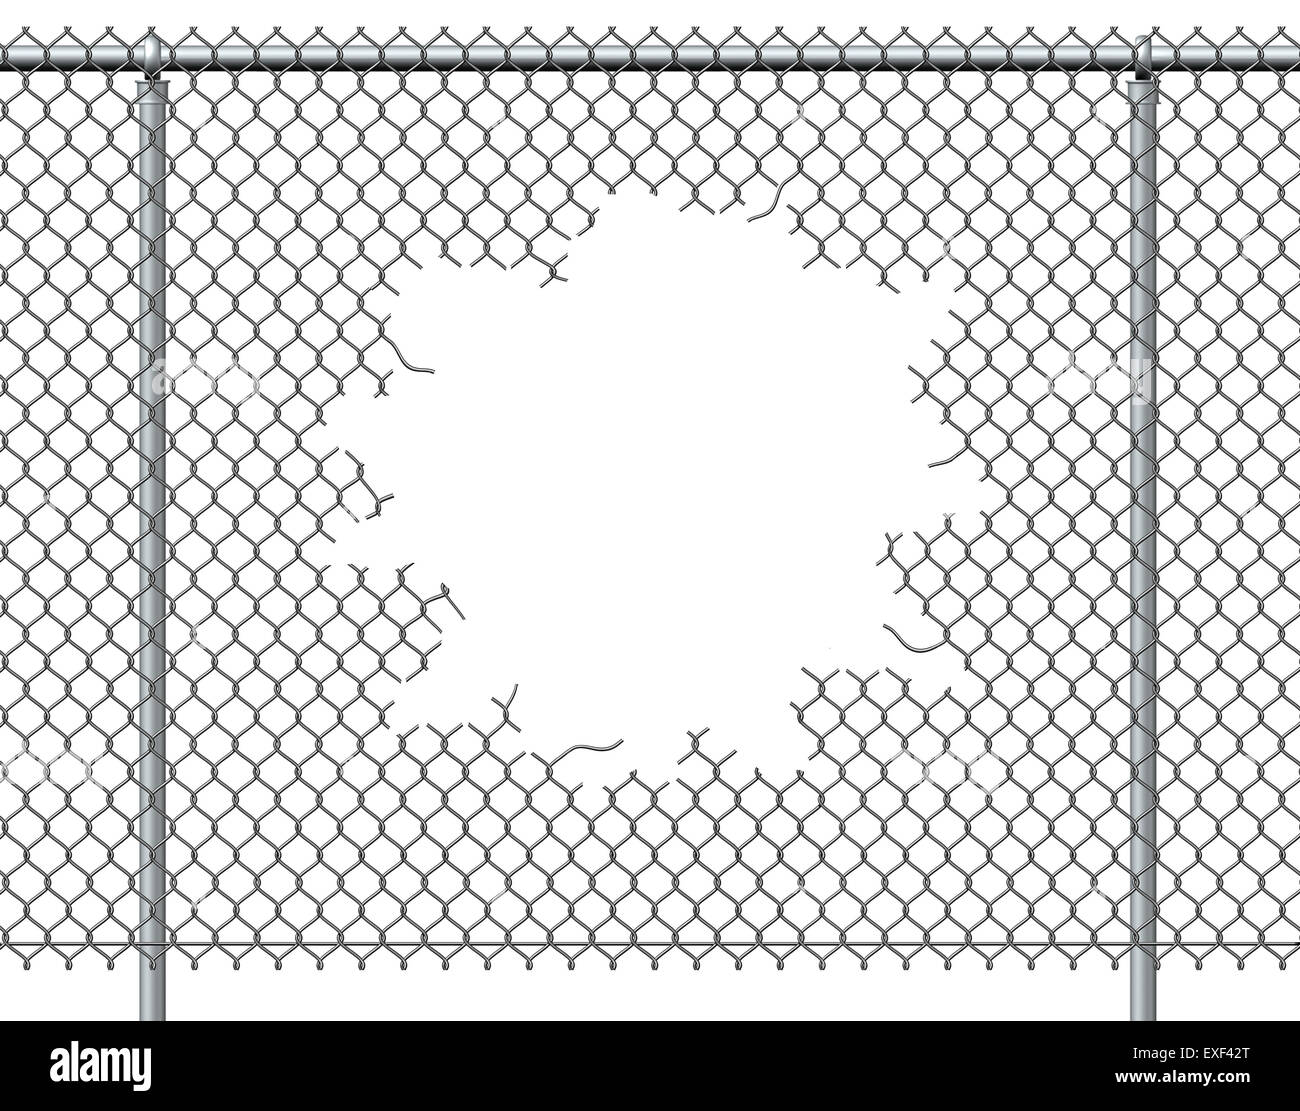 Chain link fence hole with blank copy space isolated on a white background burst with ripped chainlink metal wire - Stock Image